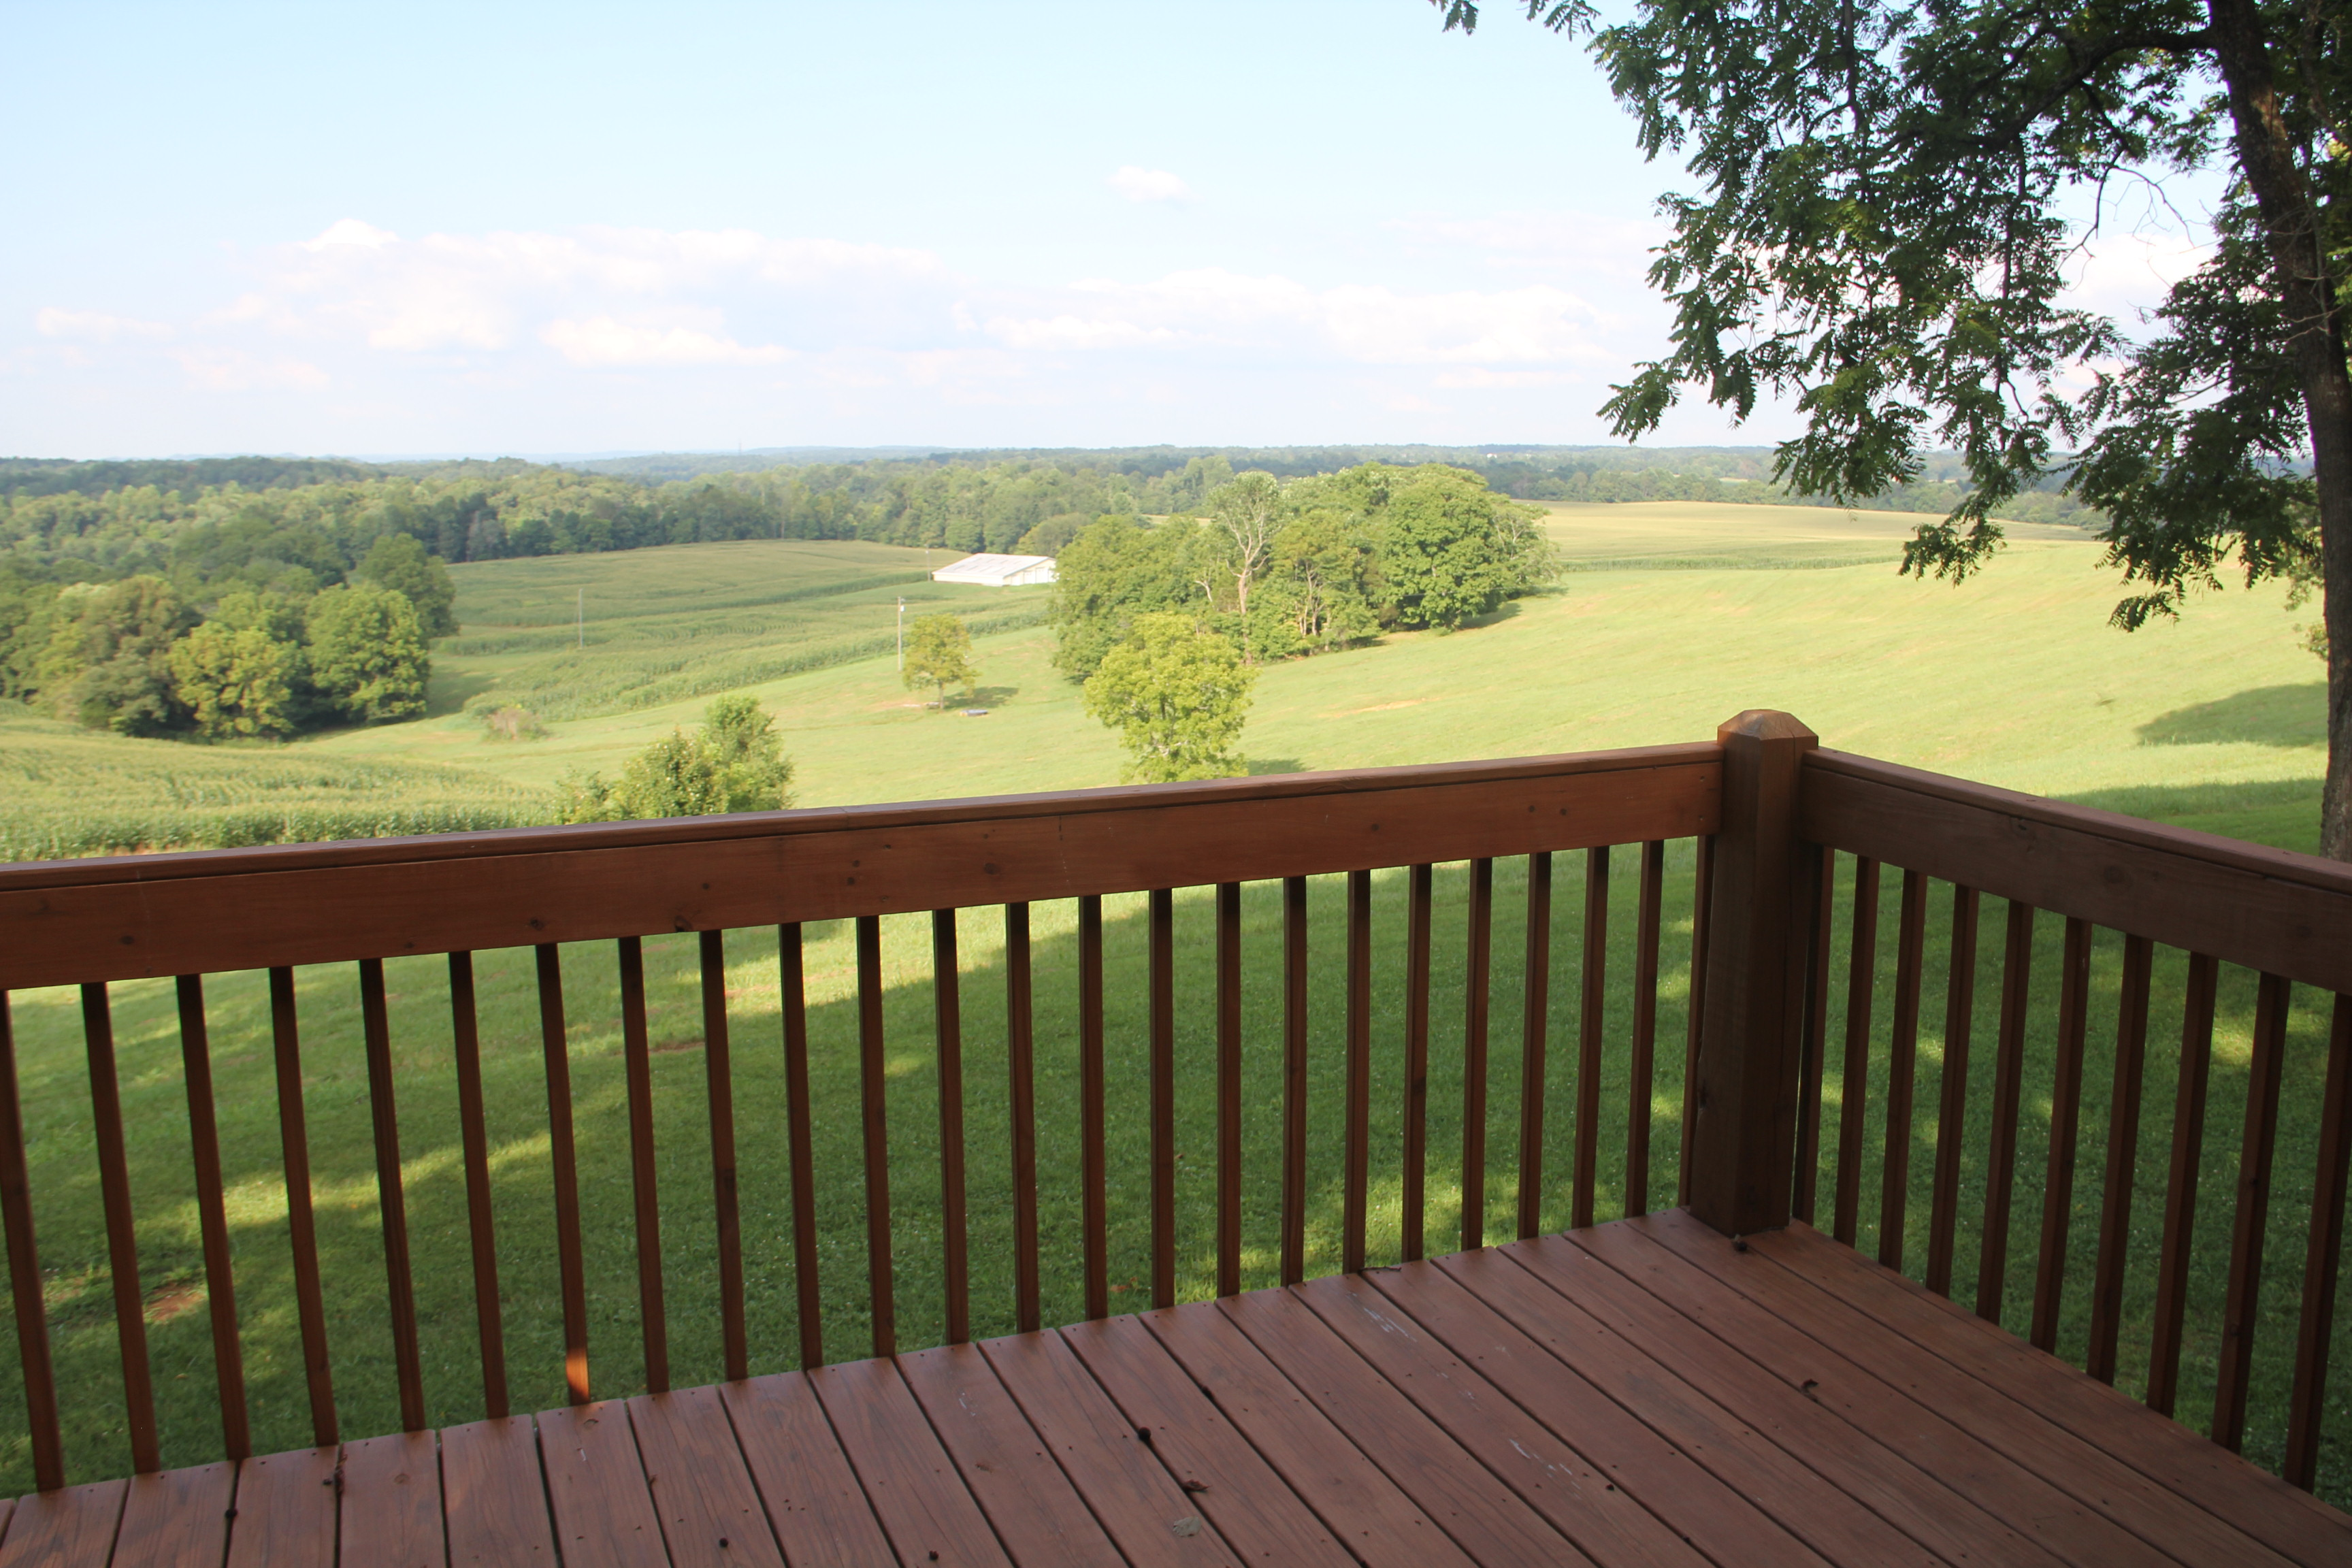 View from Farmhouse Deck